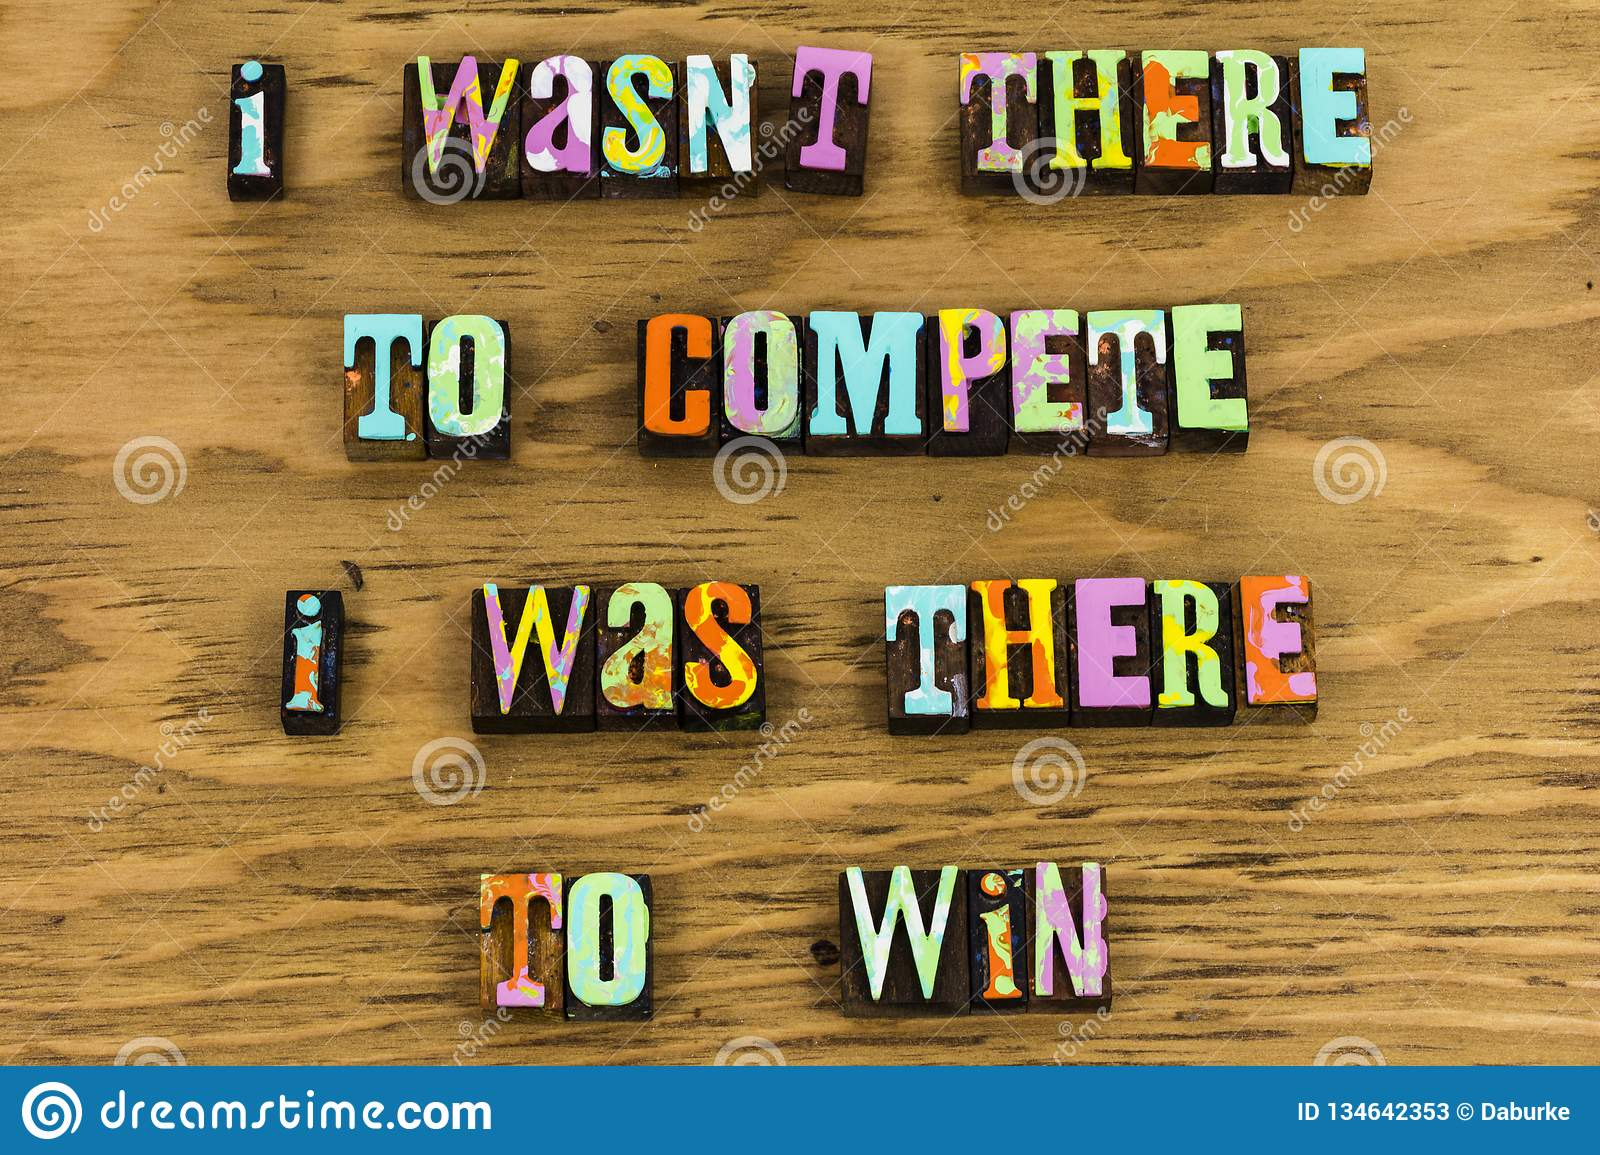 Compete competition win winning challenge